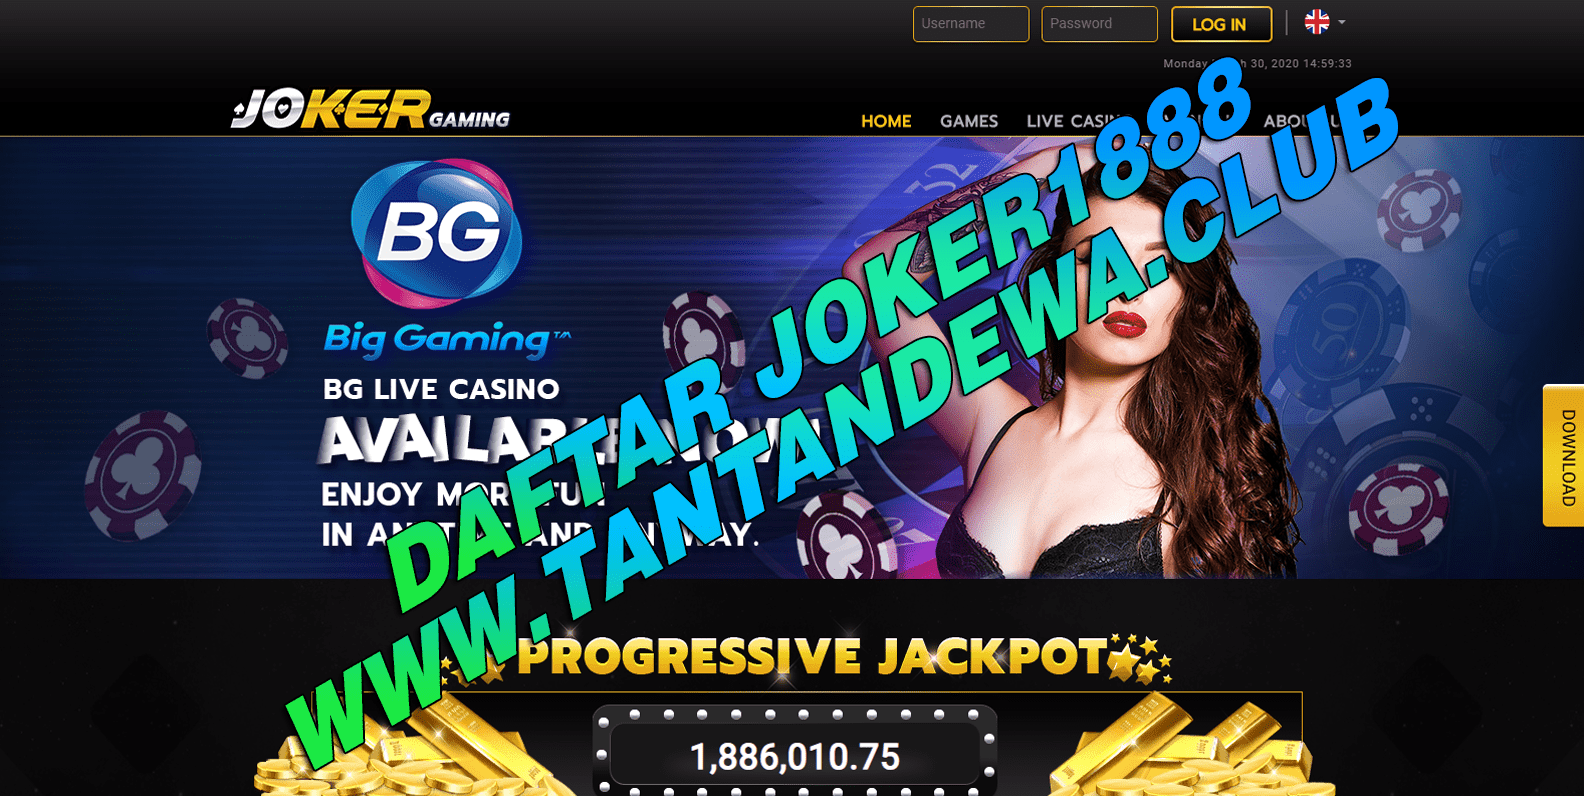 Joker1888, Roma Slot Joker1888, Login Joker1888, Daftar Joker1888, Agen Joker1888, Situs Joker1888, Situs Slot Roma, Download Joker1888